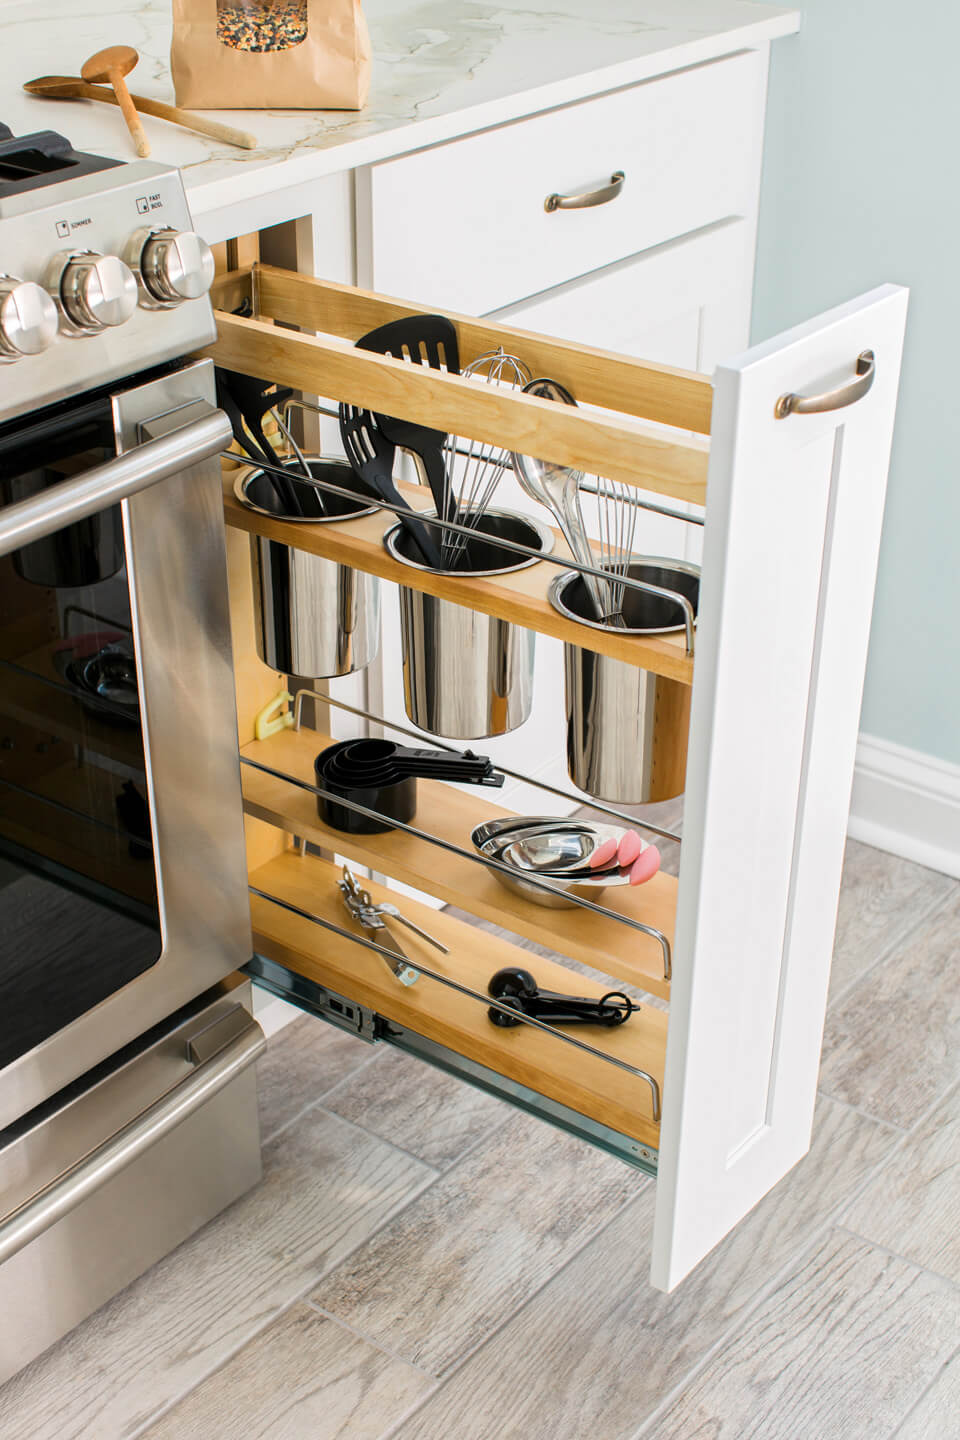 Utensil Drawers In Unused Cabinet E